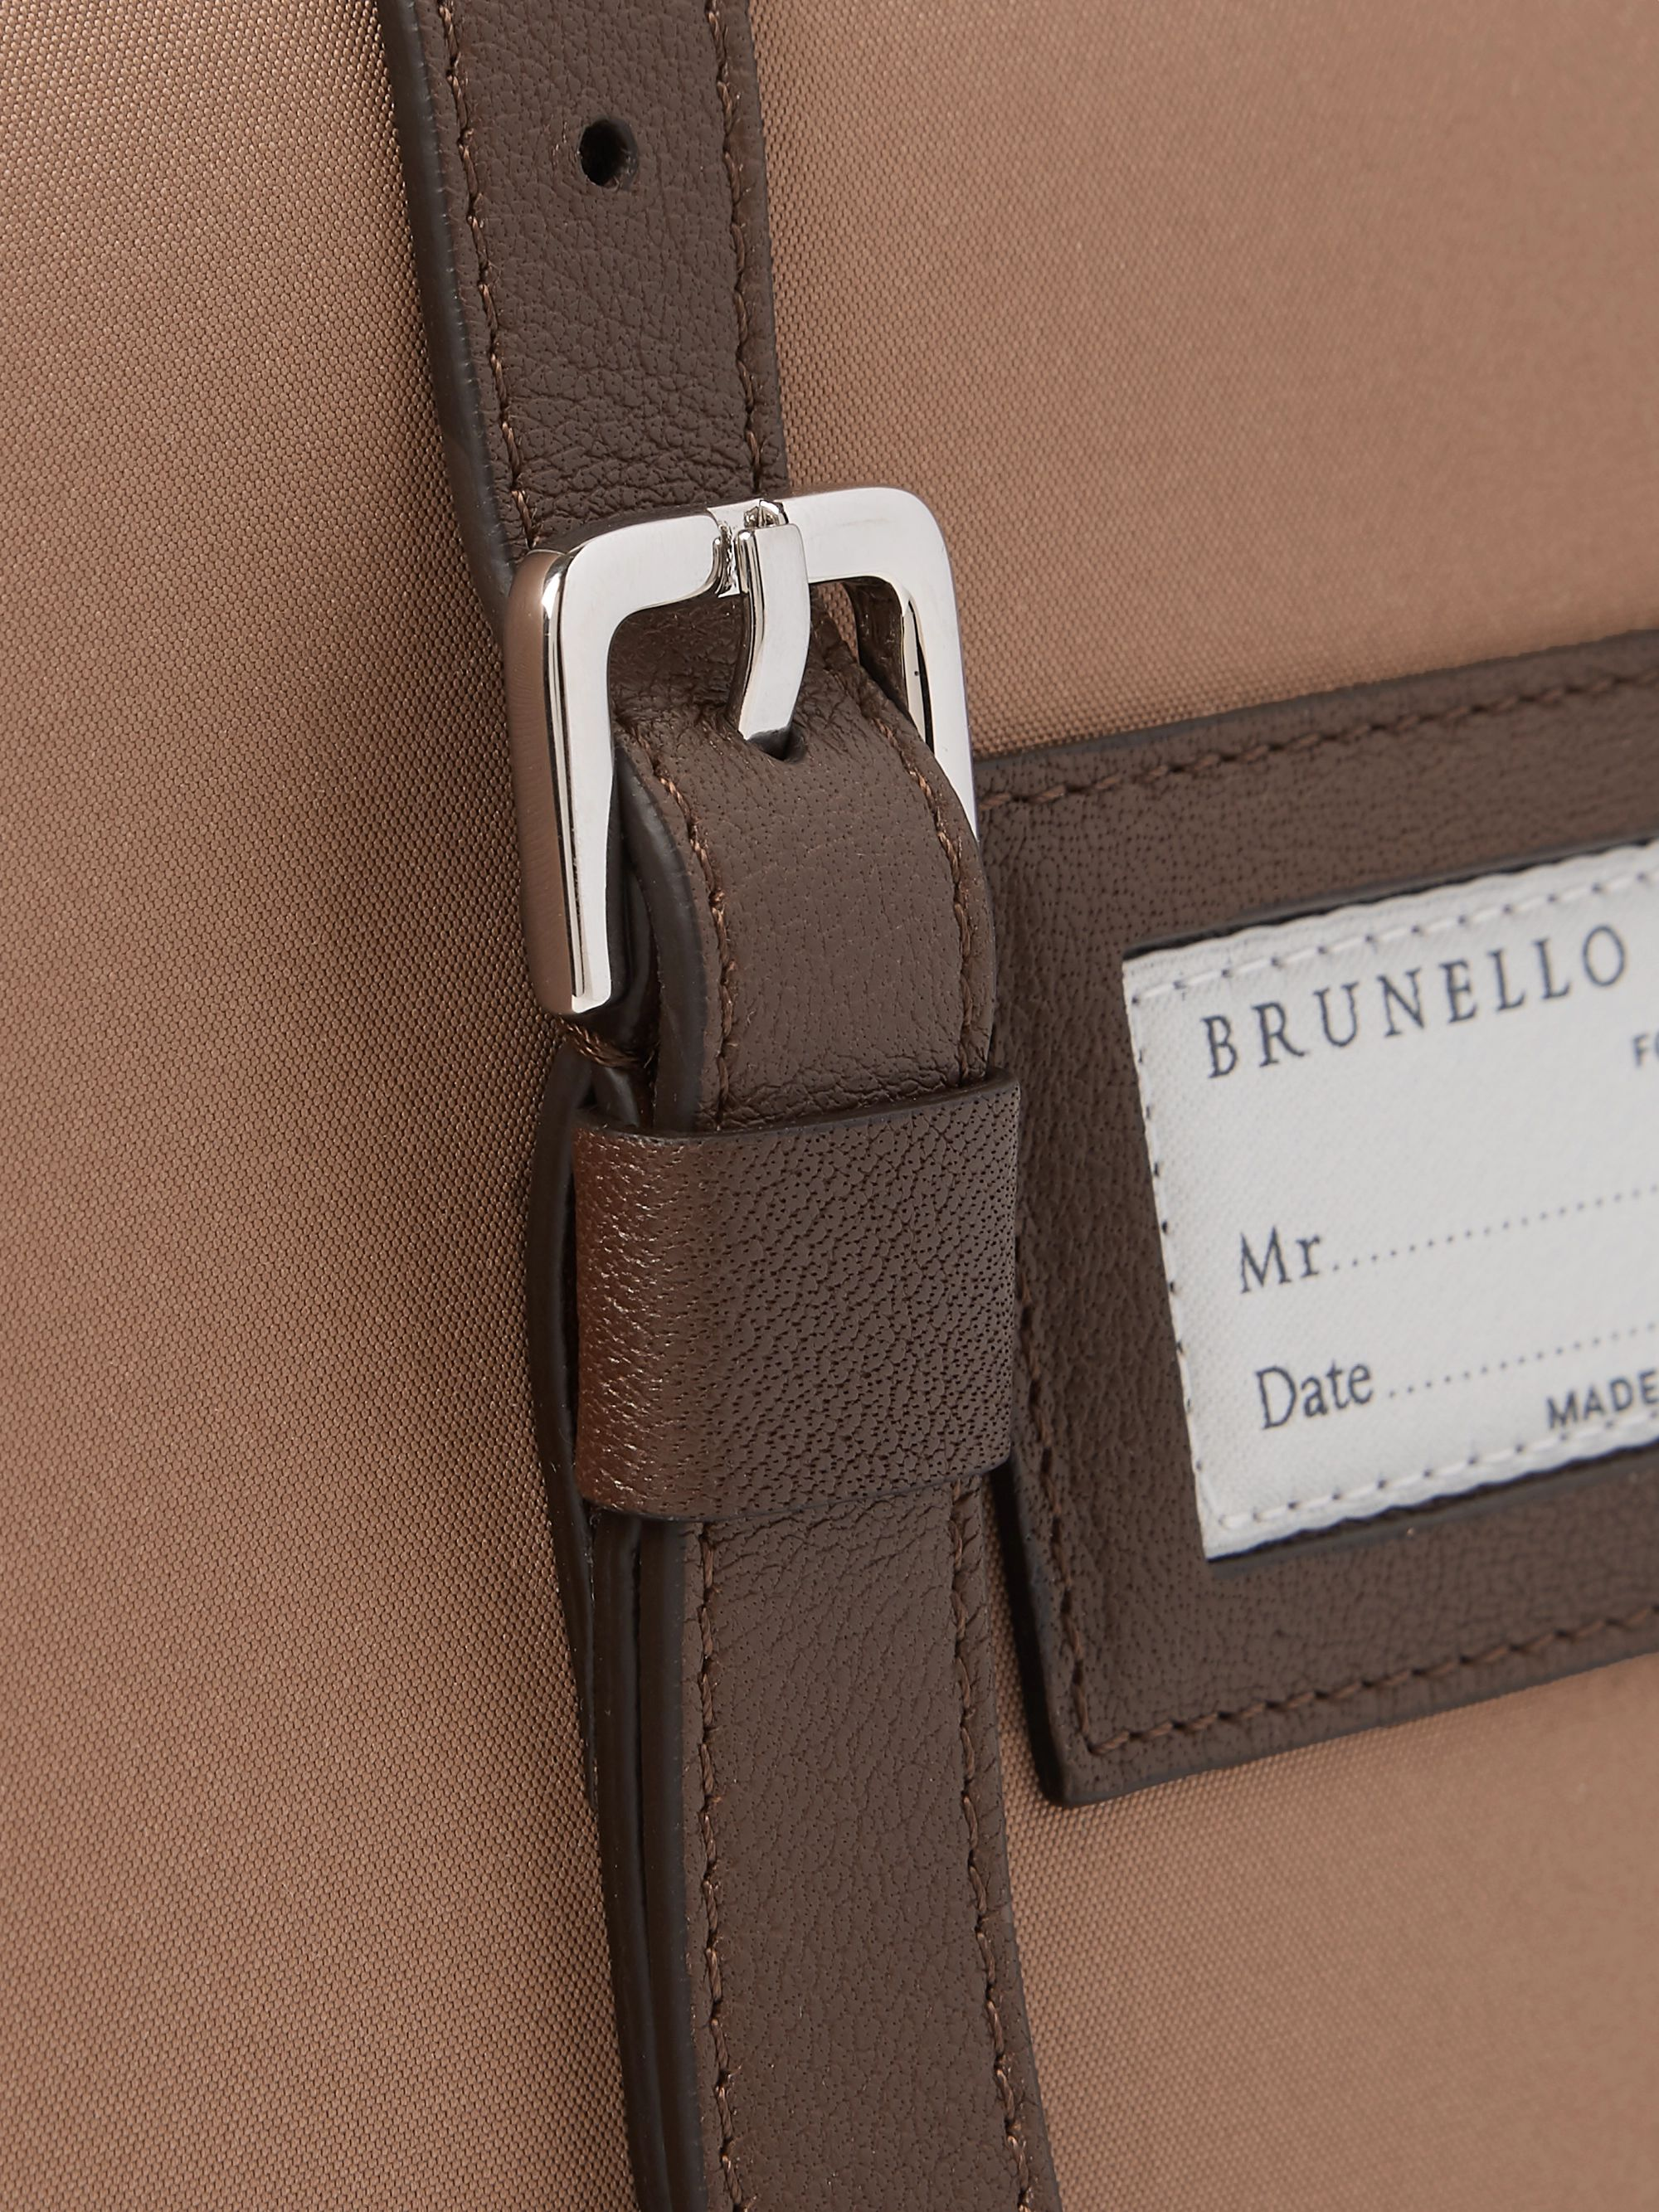 Brunello Cucinelli Leather Hanging Wash Bag